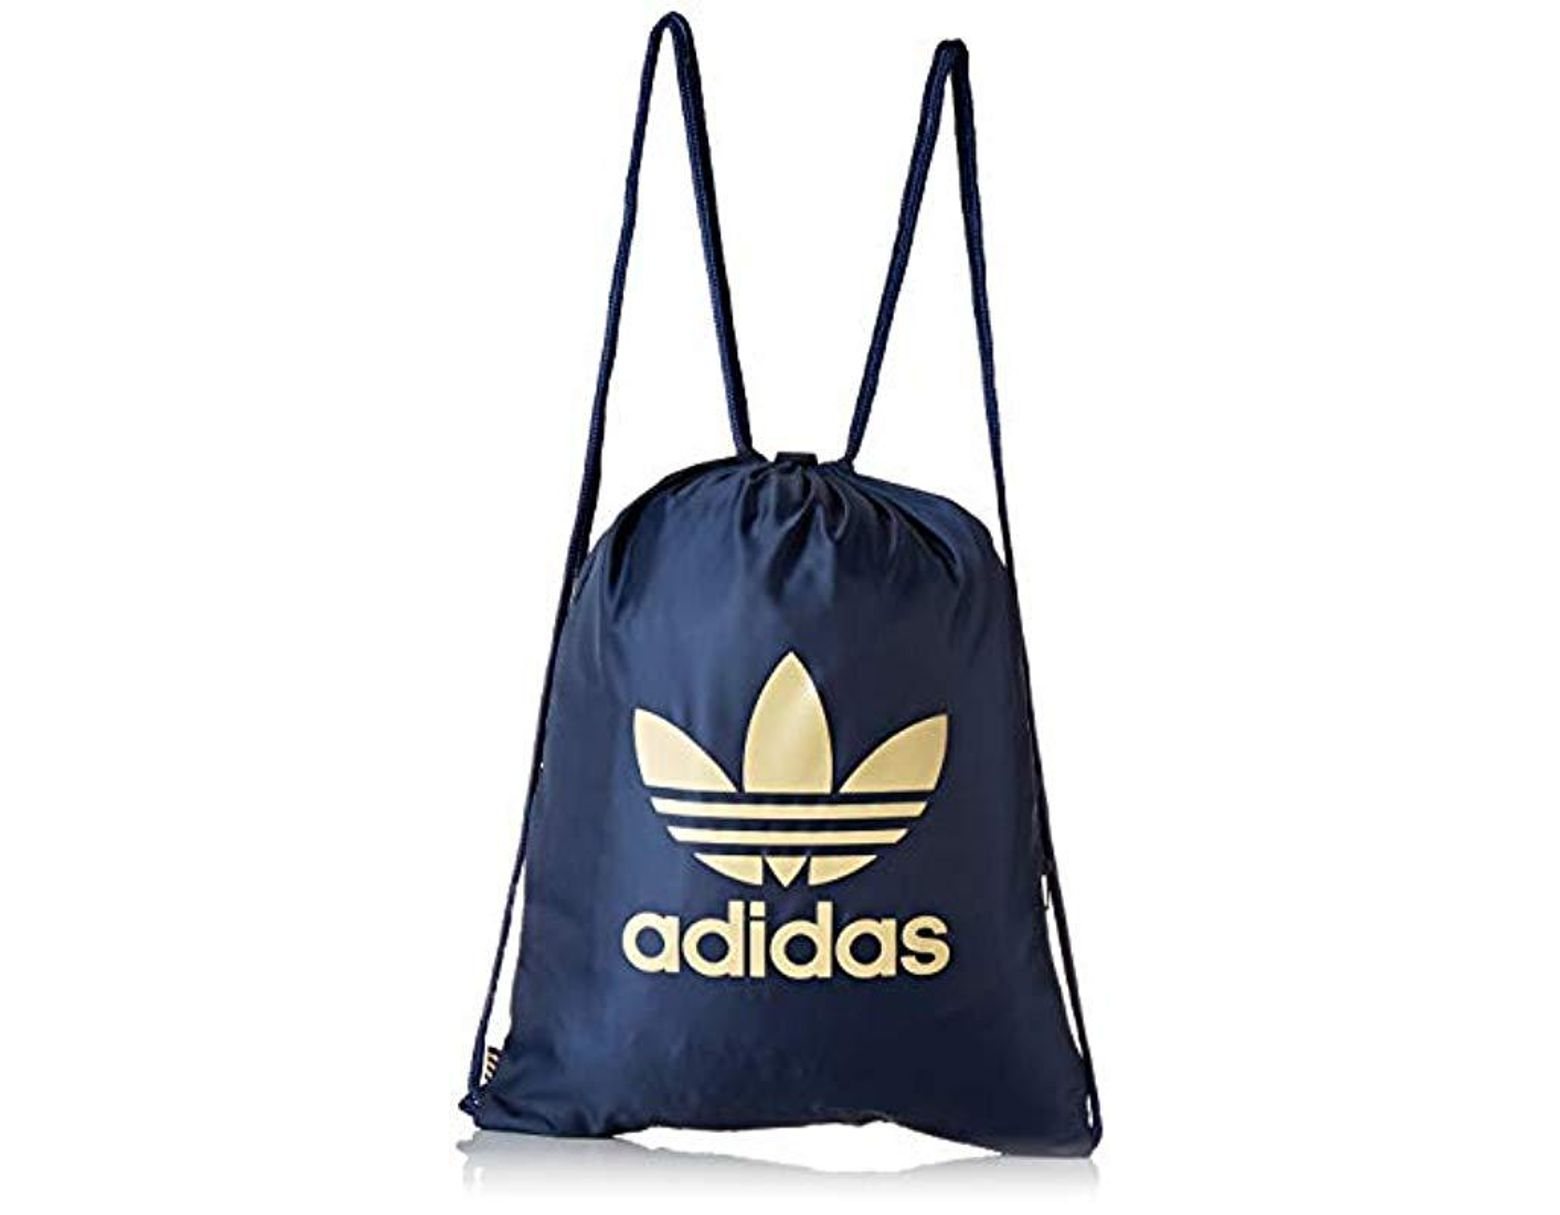 adidas Unisex Gymsack Trefoil Backpack in Blue for Men - Lyst